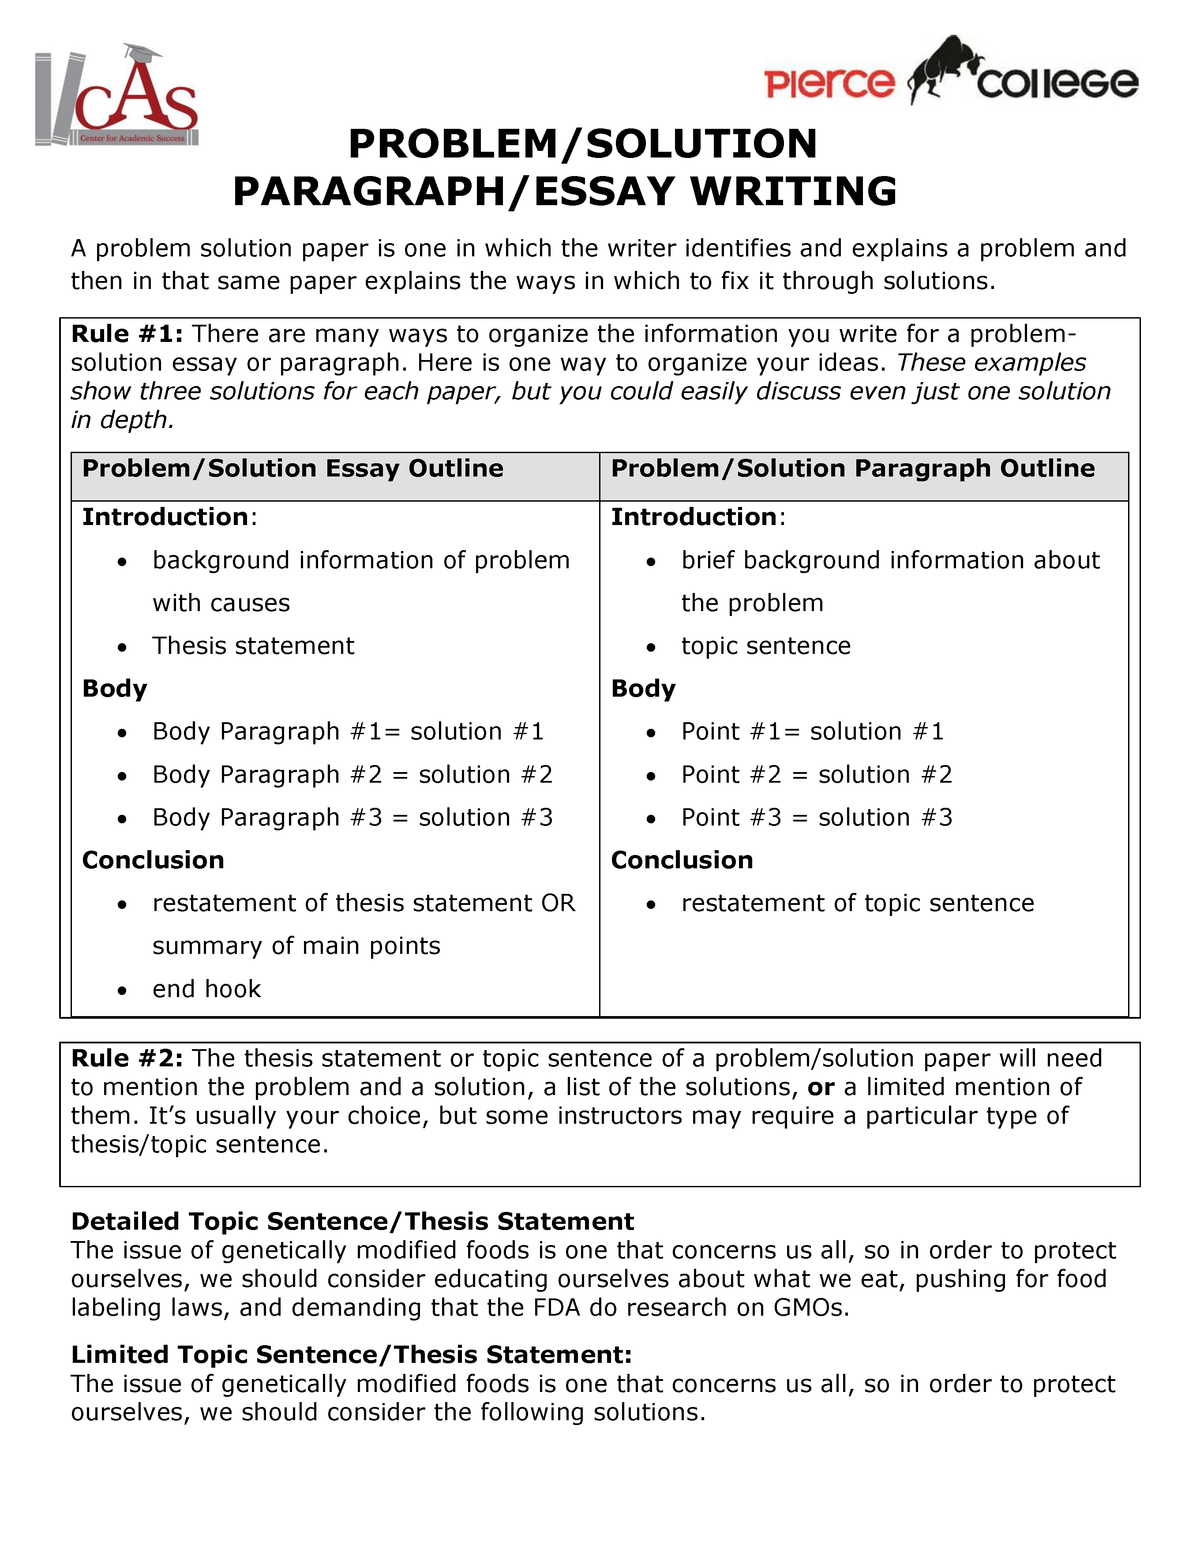 Sample Essay Papers  Persuasive Essay Sample High School also Environmental Science Essays Problem Solution Paragraph Essay Writing  Eng  English  An Essay About Health